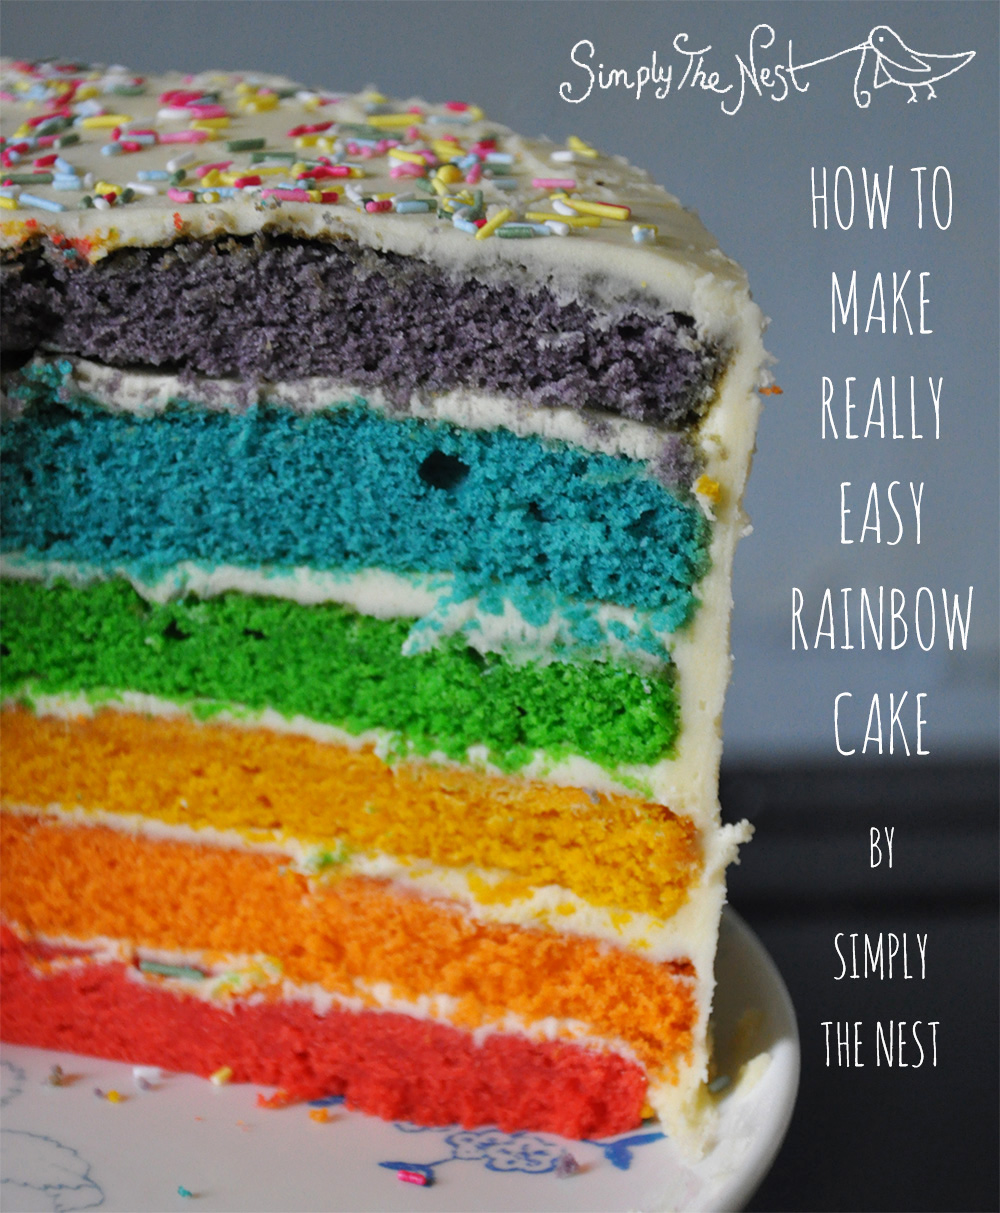 How to make a really easy rainbow cake - by Simply The Nest, a UK DIY renovation blog